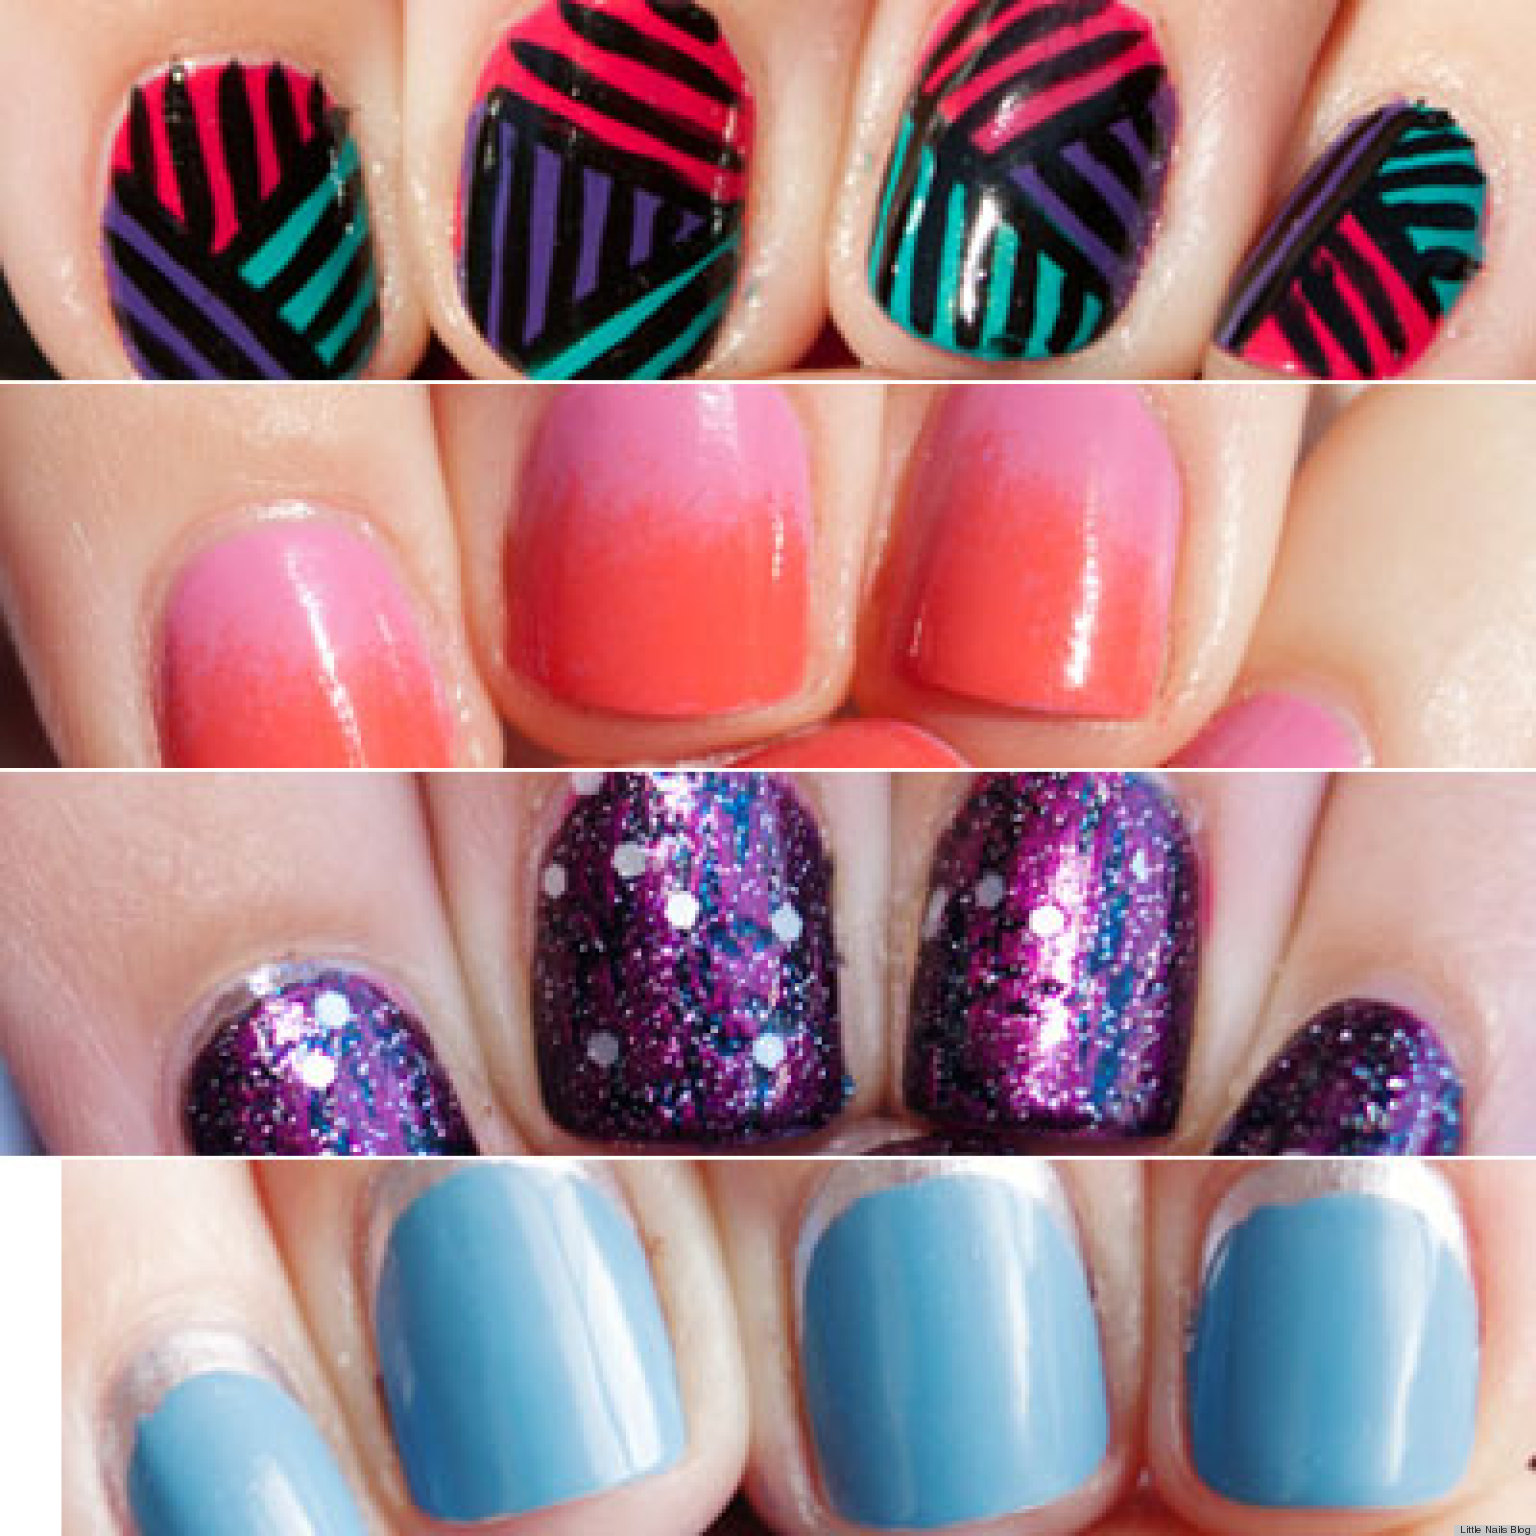 13 Nail Art Ideas For Teeny Tiny Fingertips (PHOTOS